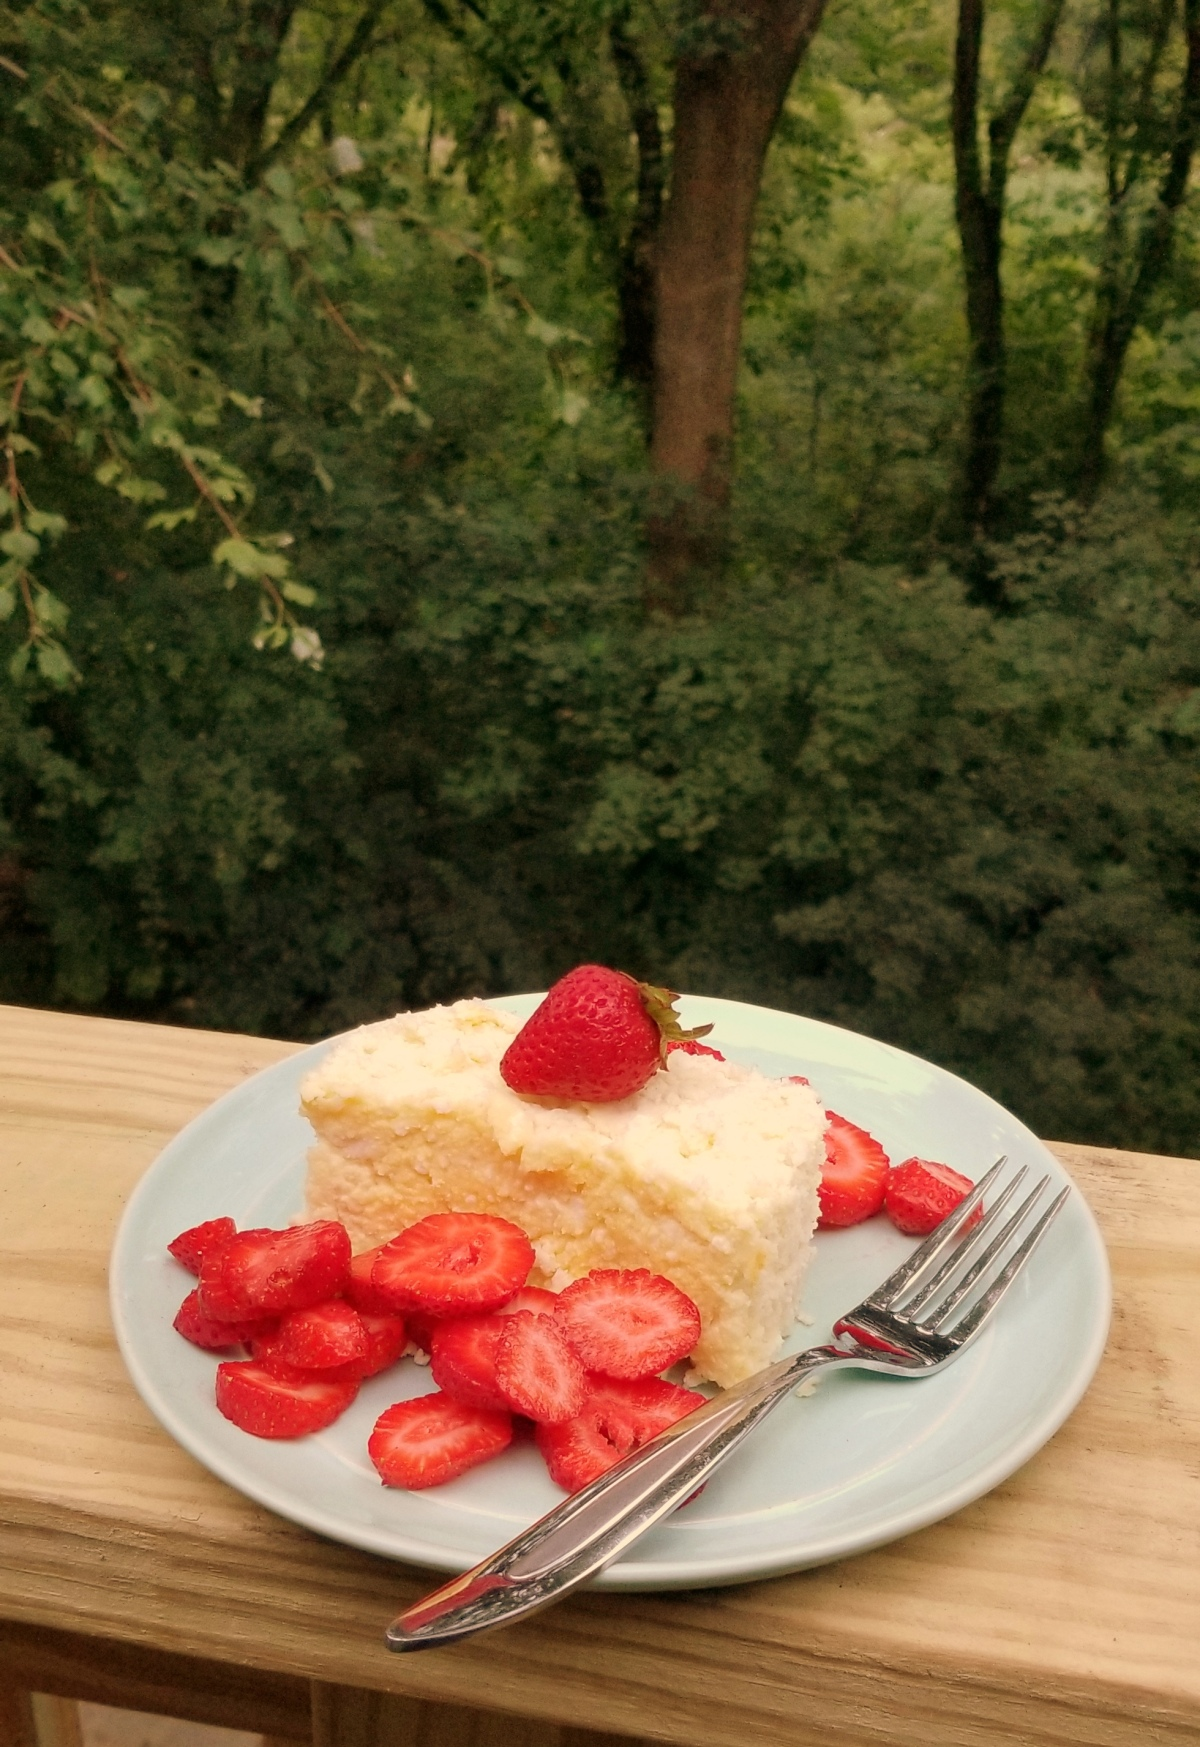 Recipe: Breakfast Cheesecake w/ Fresh Strawberries